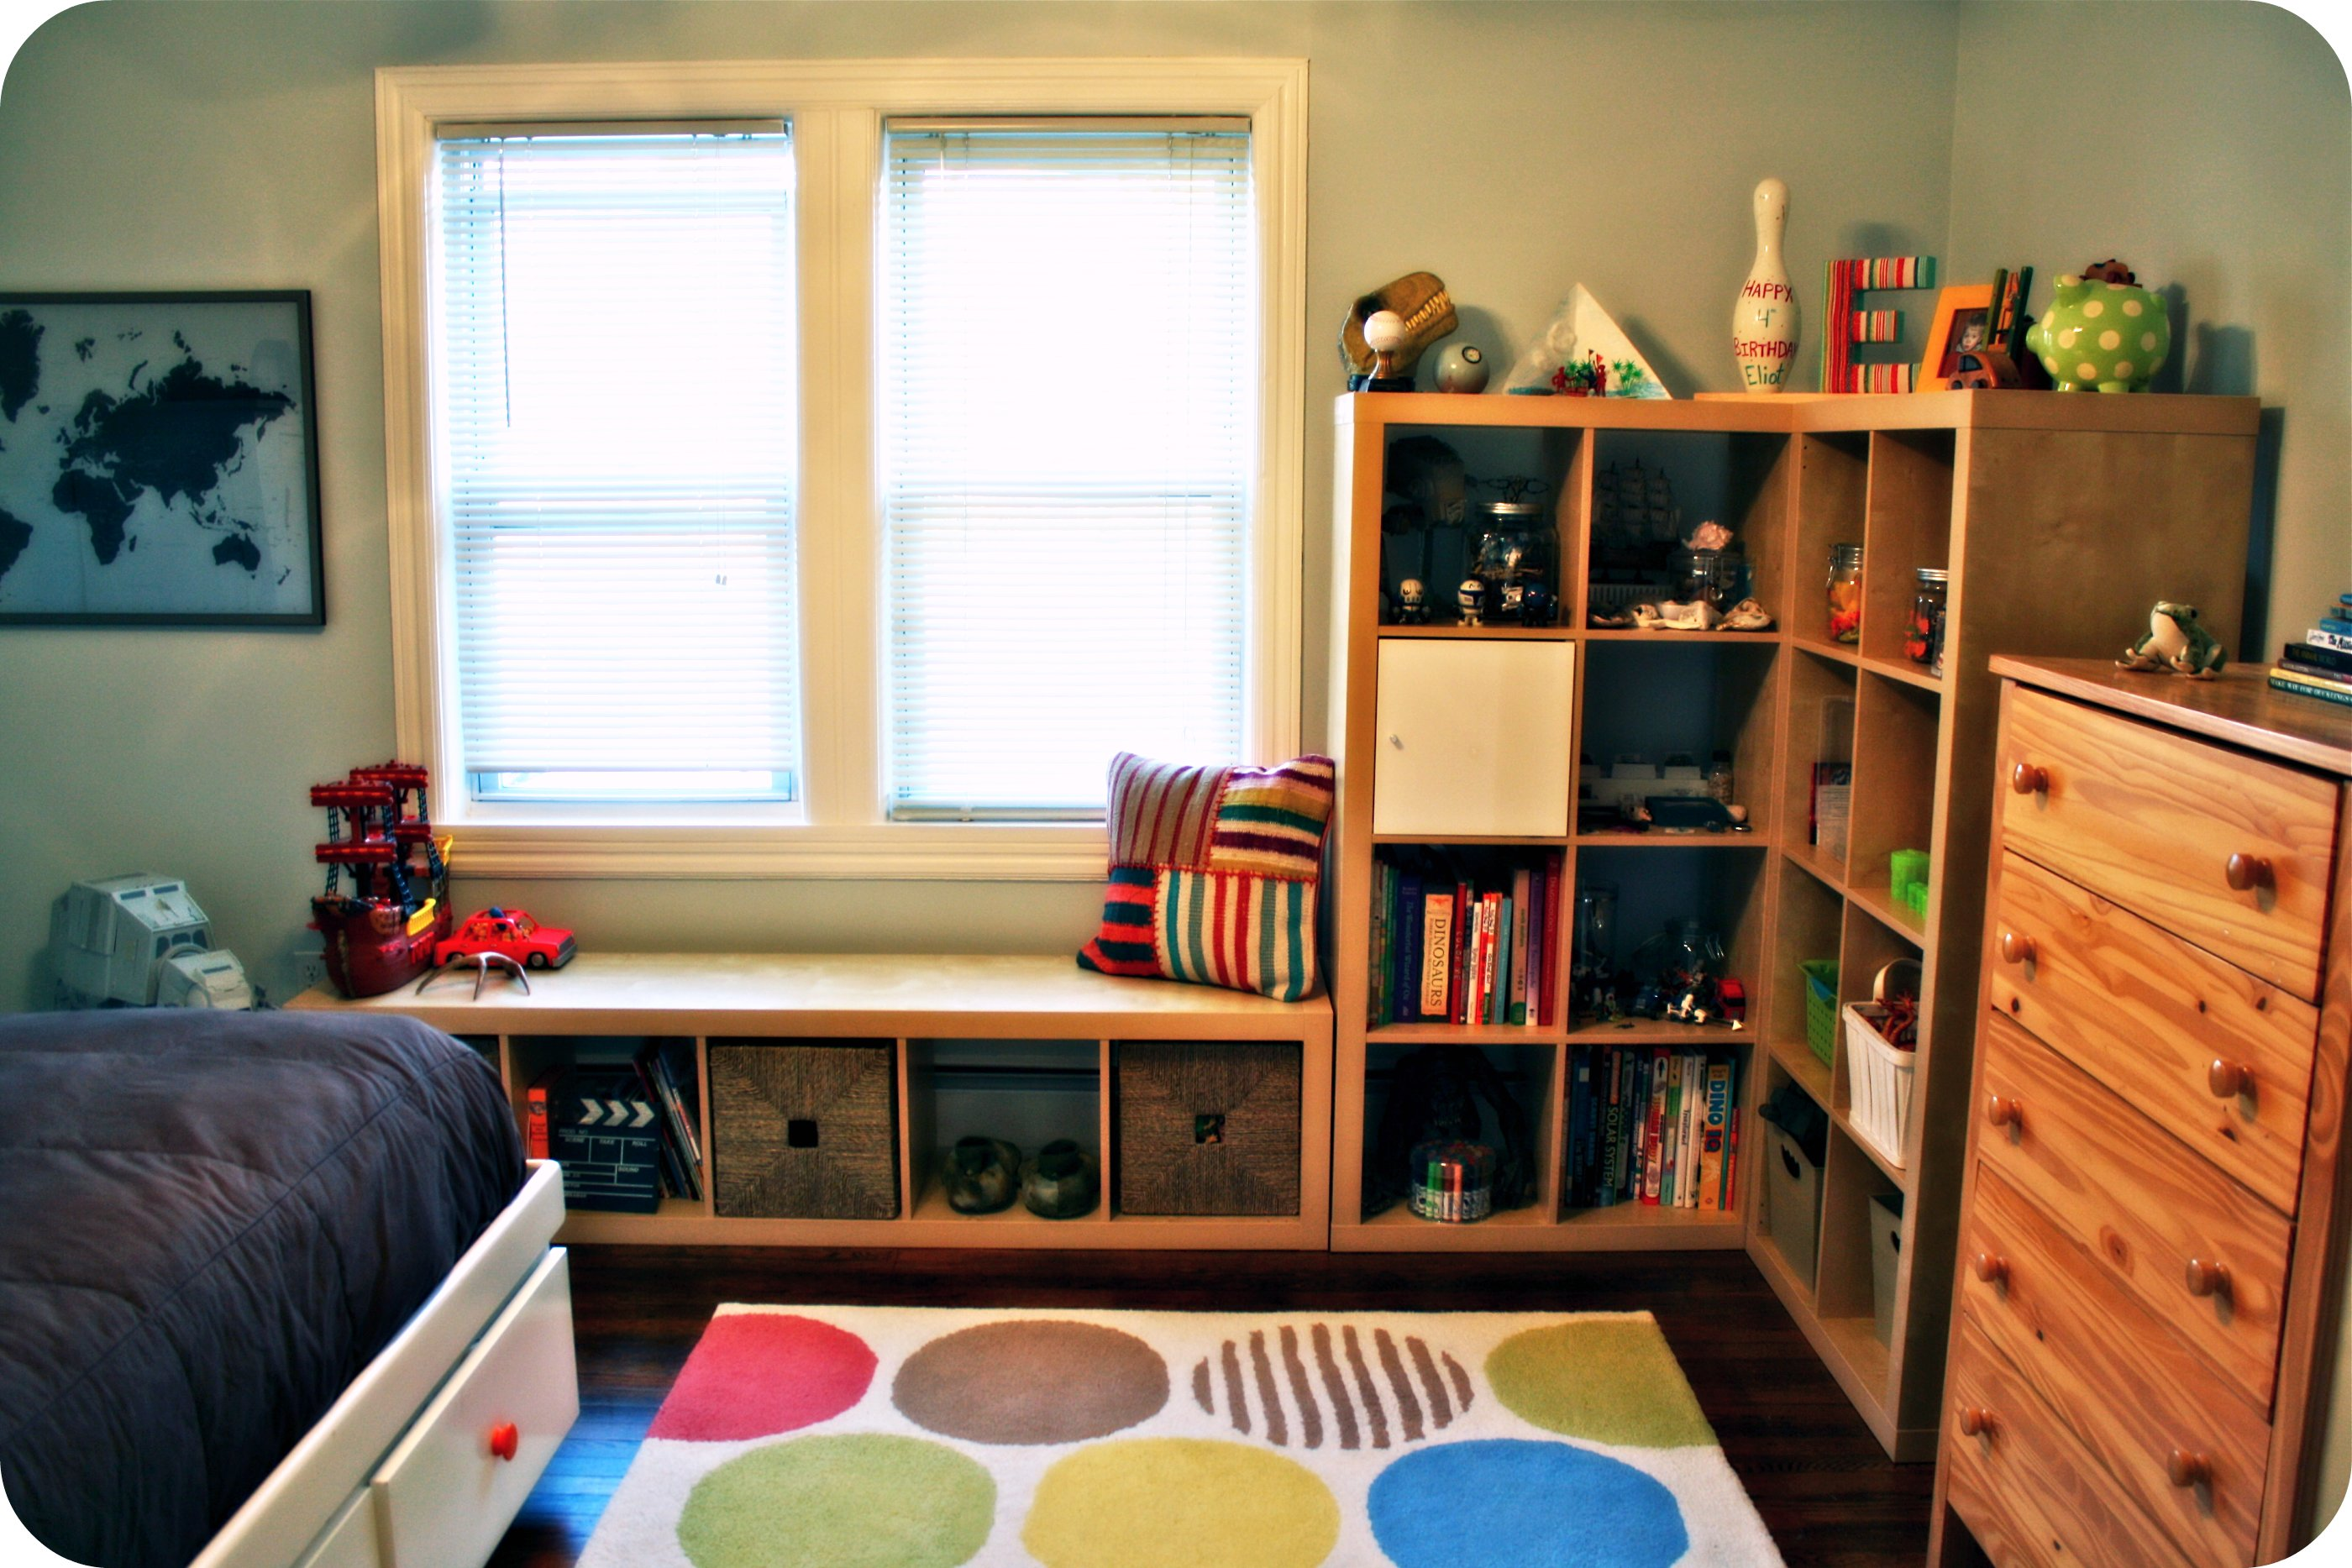 Image of a children's room neatly organized with cube shelves